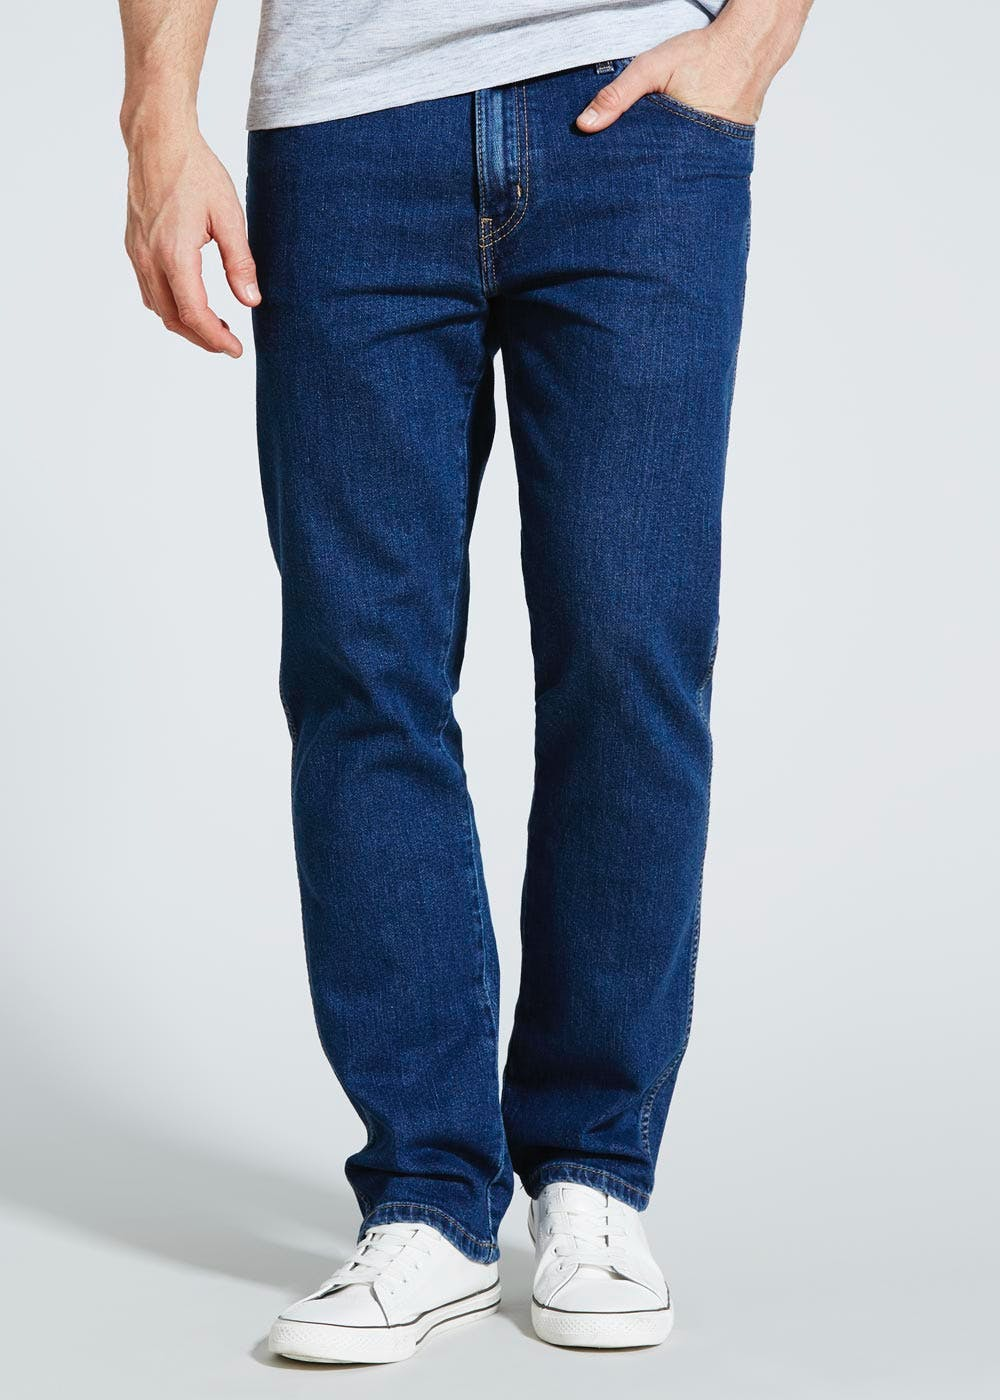 Wrangler Darkwash Stretch Fit Jeans Blue Matalan